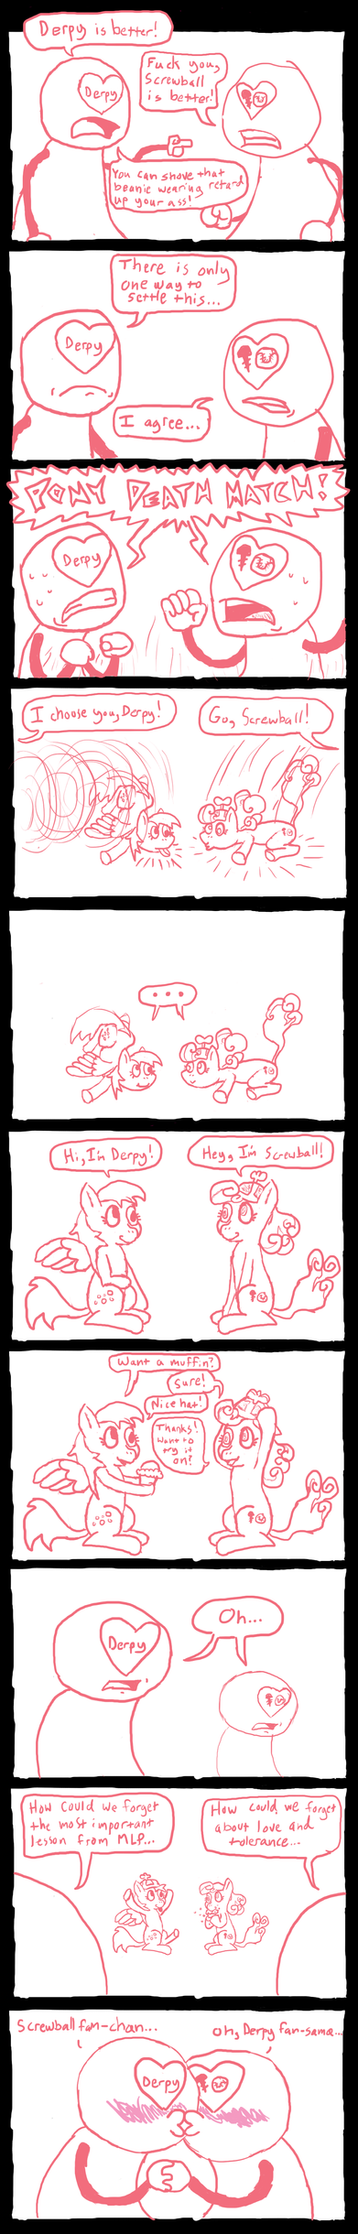 Derpy and Screwball Fans by FicFicPonyFic